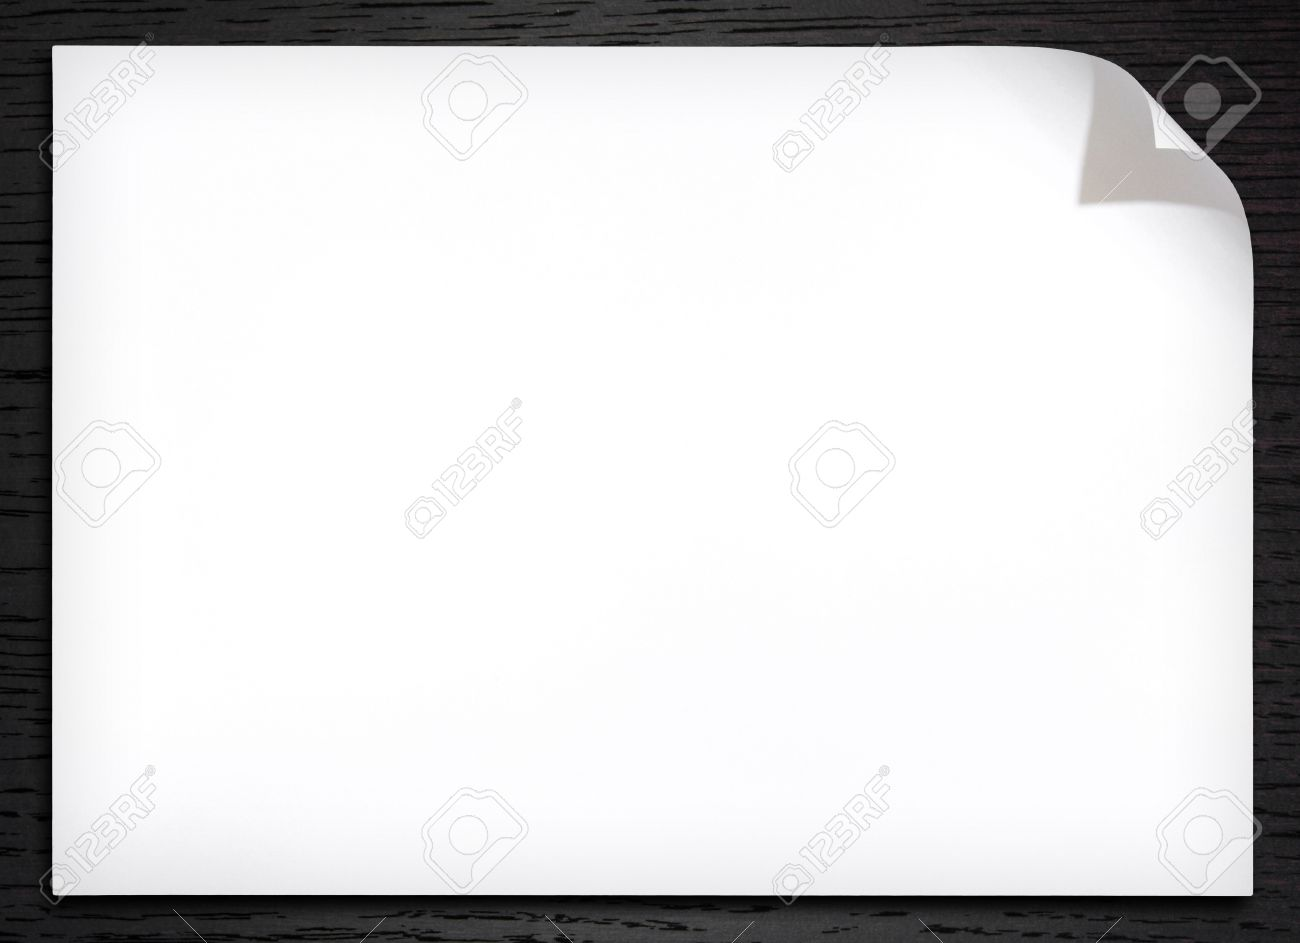 Image result for images of blank white paper